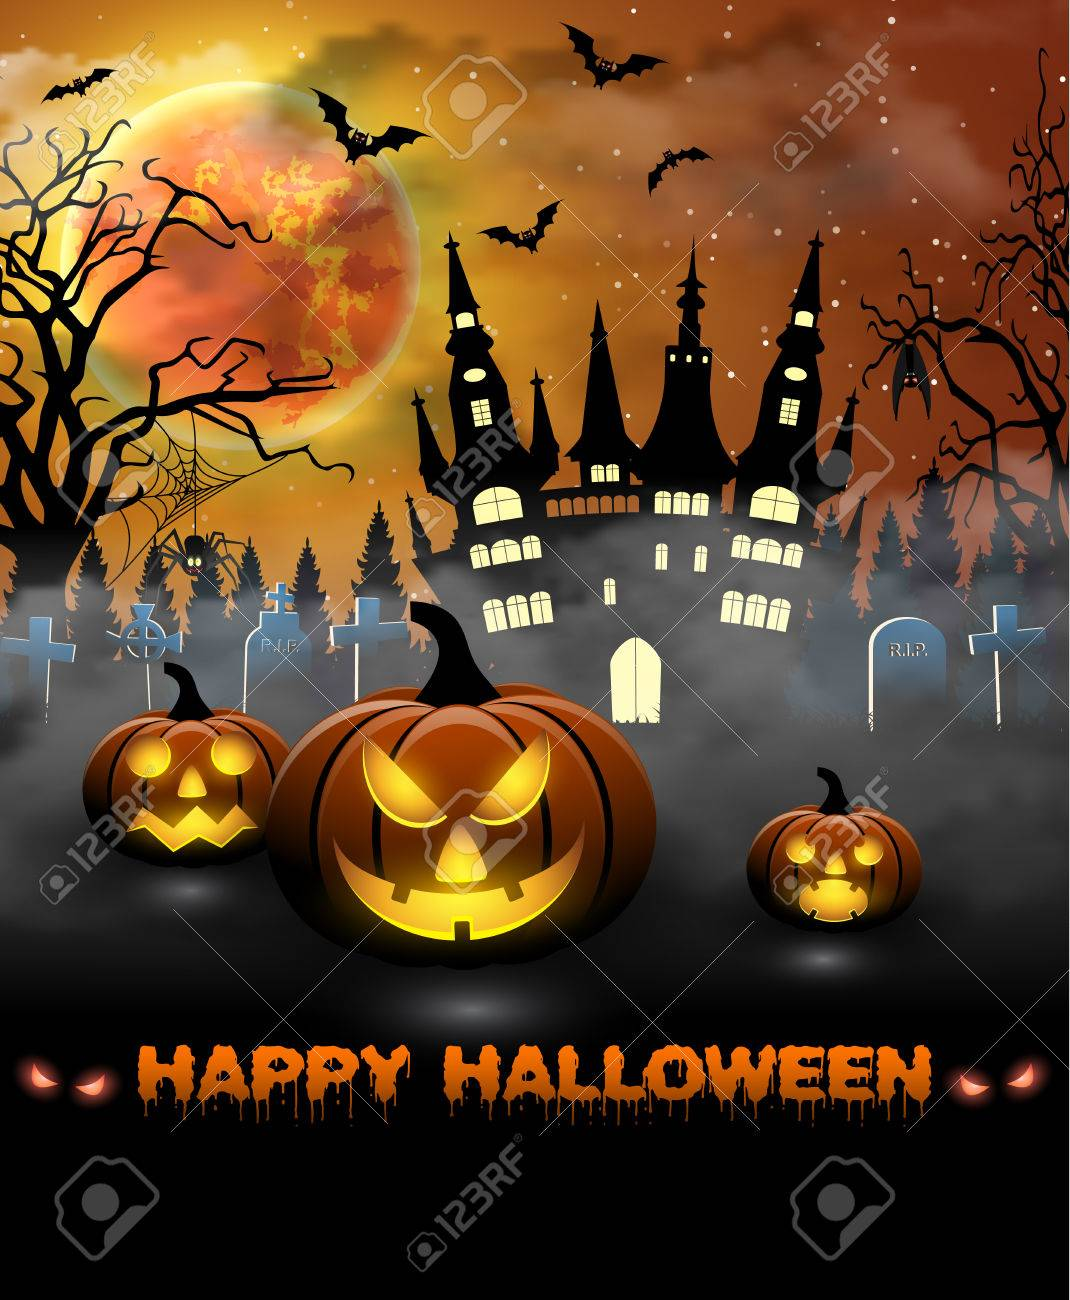 Lovely Spooky Card For Halloween. Orange Background With Full Moon, Tombstones,  Spider, Castle